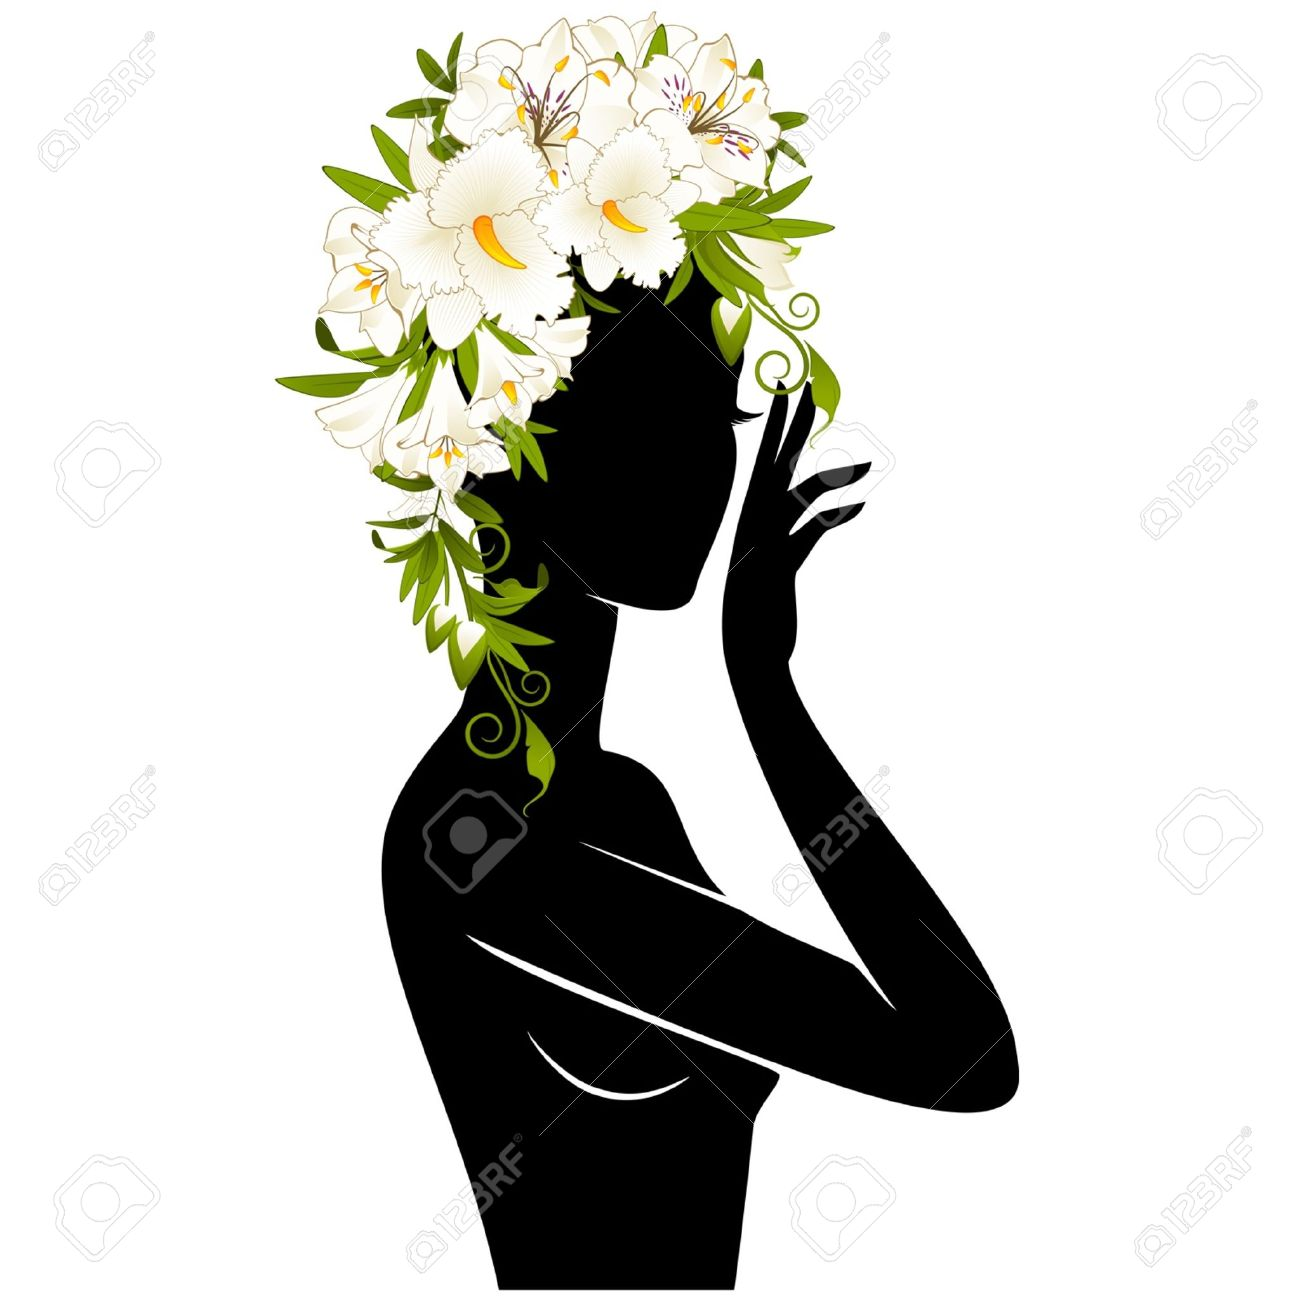 Beautiful silhouette of girl in hat from flowers on white background Stock Vector - 14907692